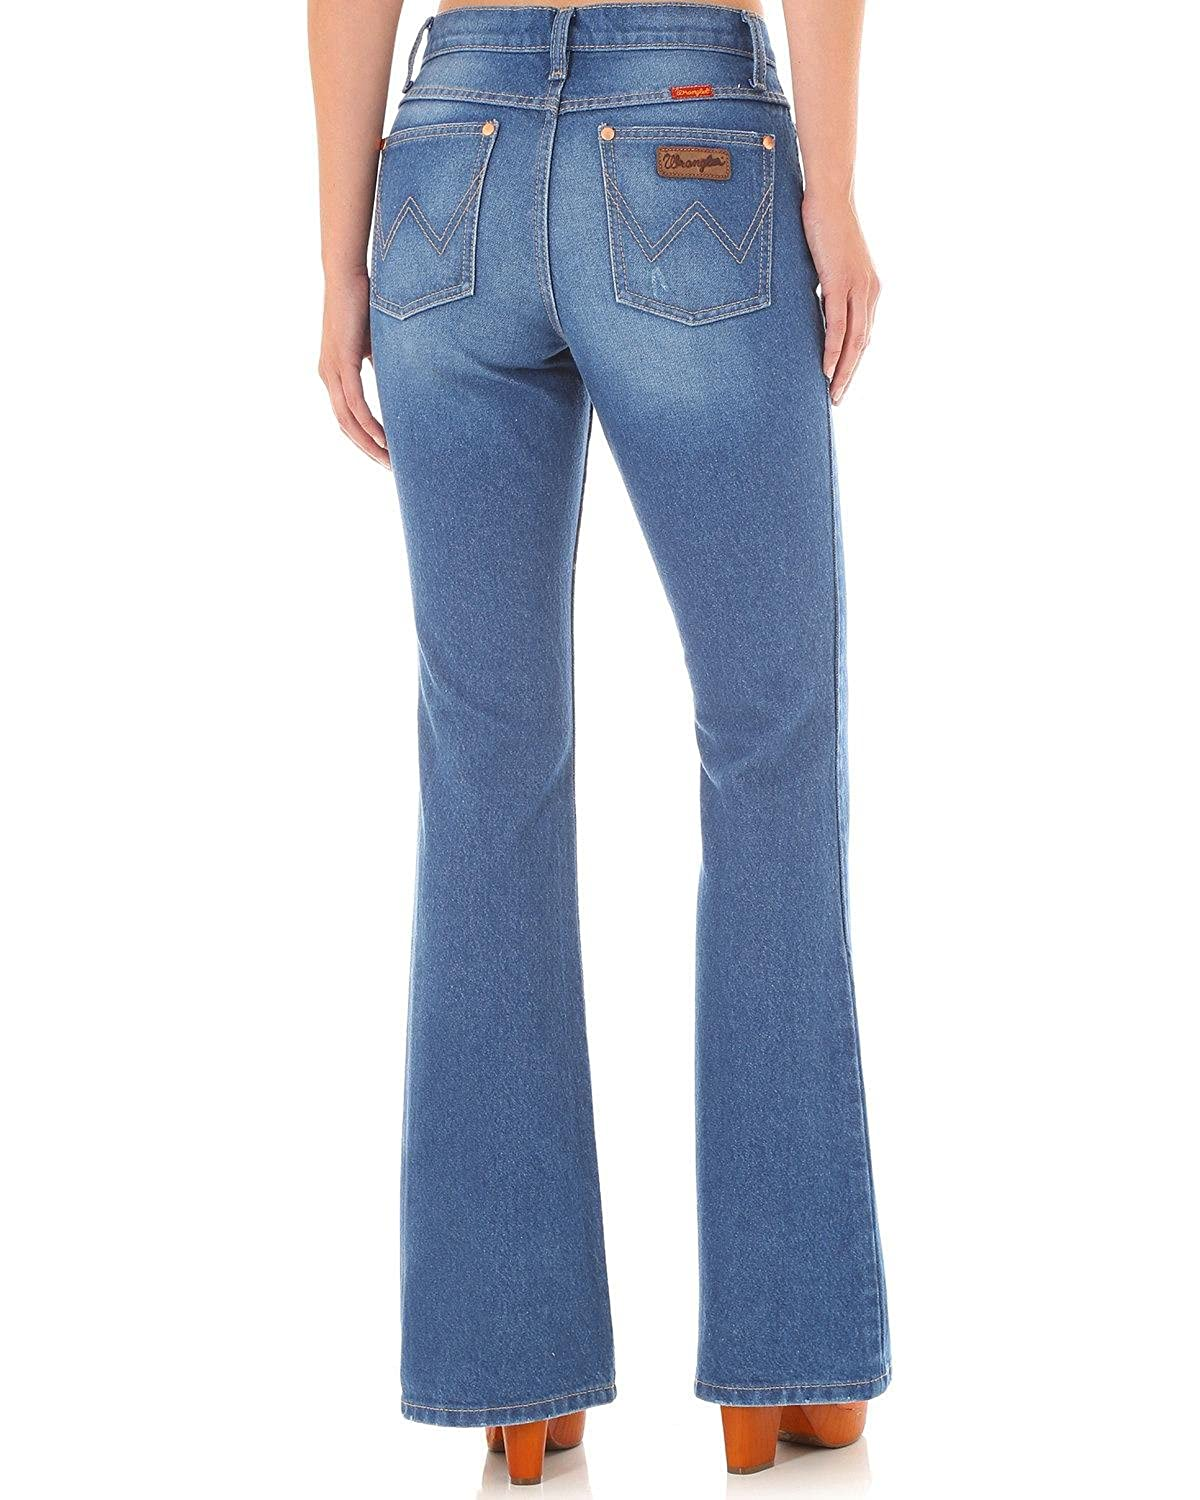 Wrangler Womens High-Waisted Flare Jeans